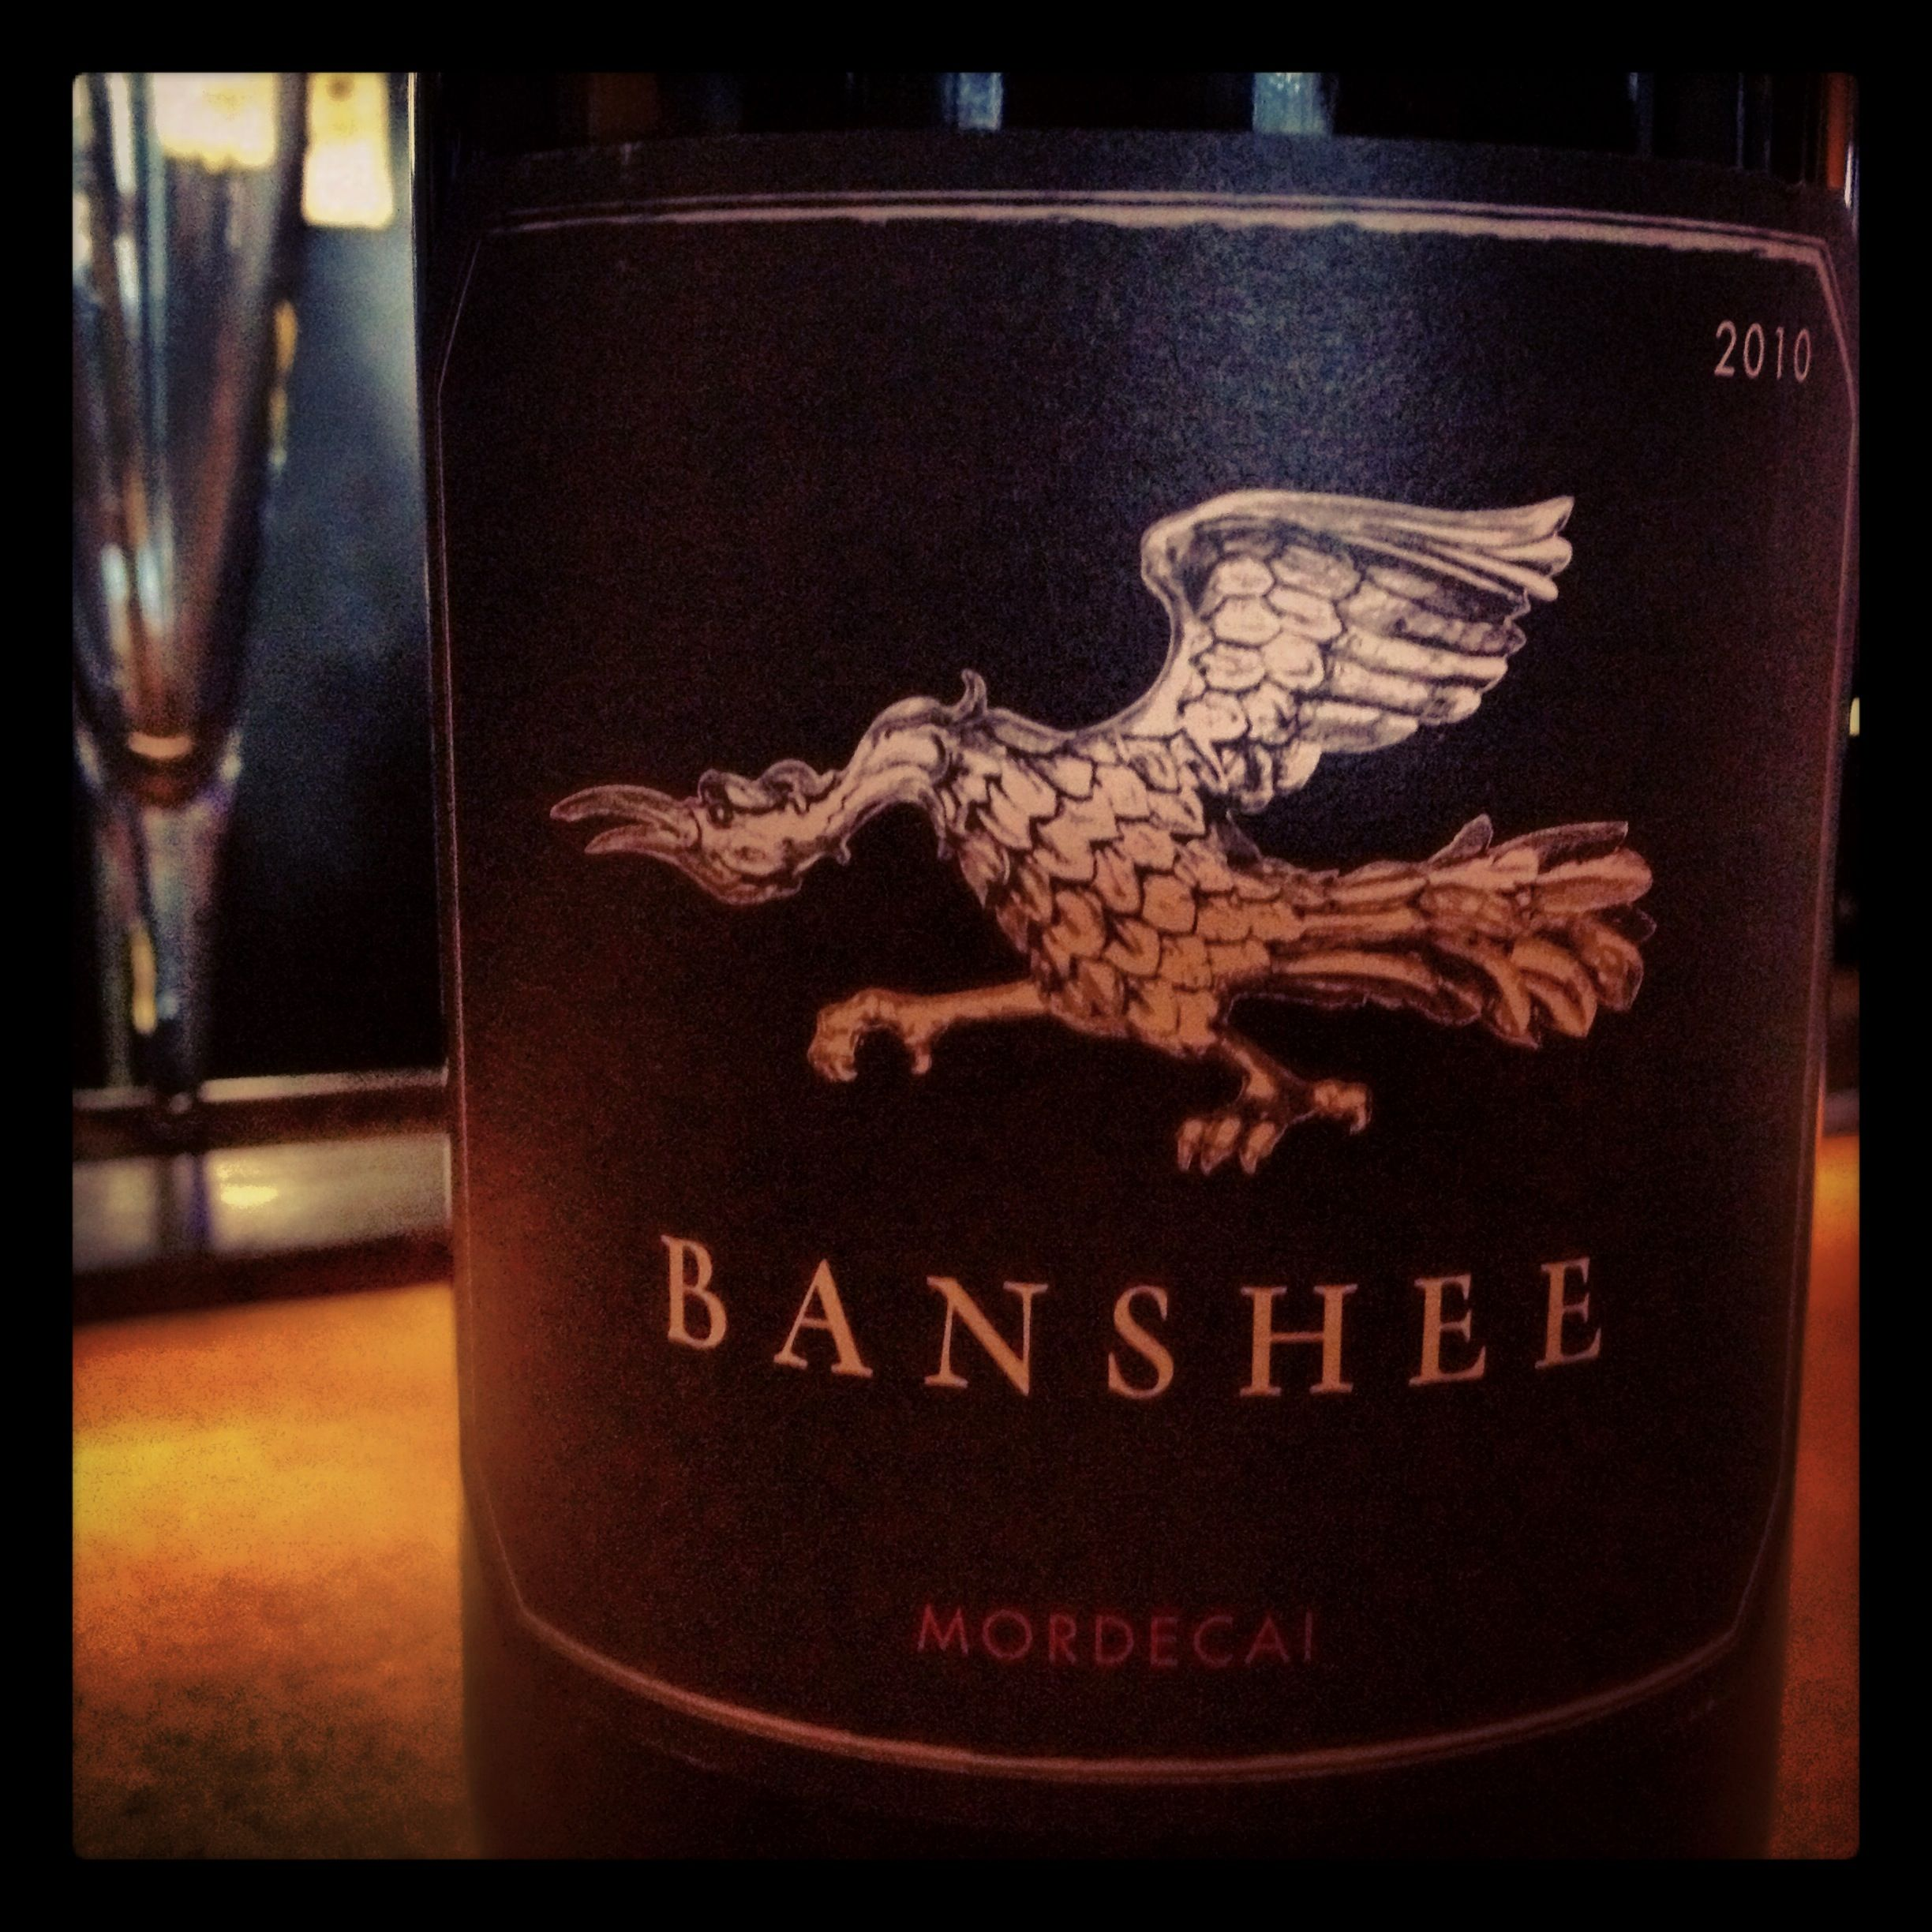 Love The Big Fruit Here Banshee Mordecai 2010 Wine And Beer